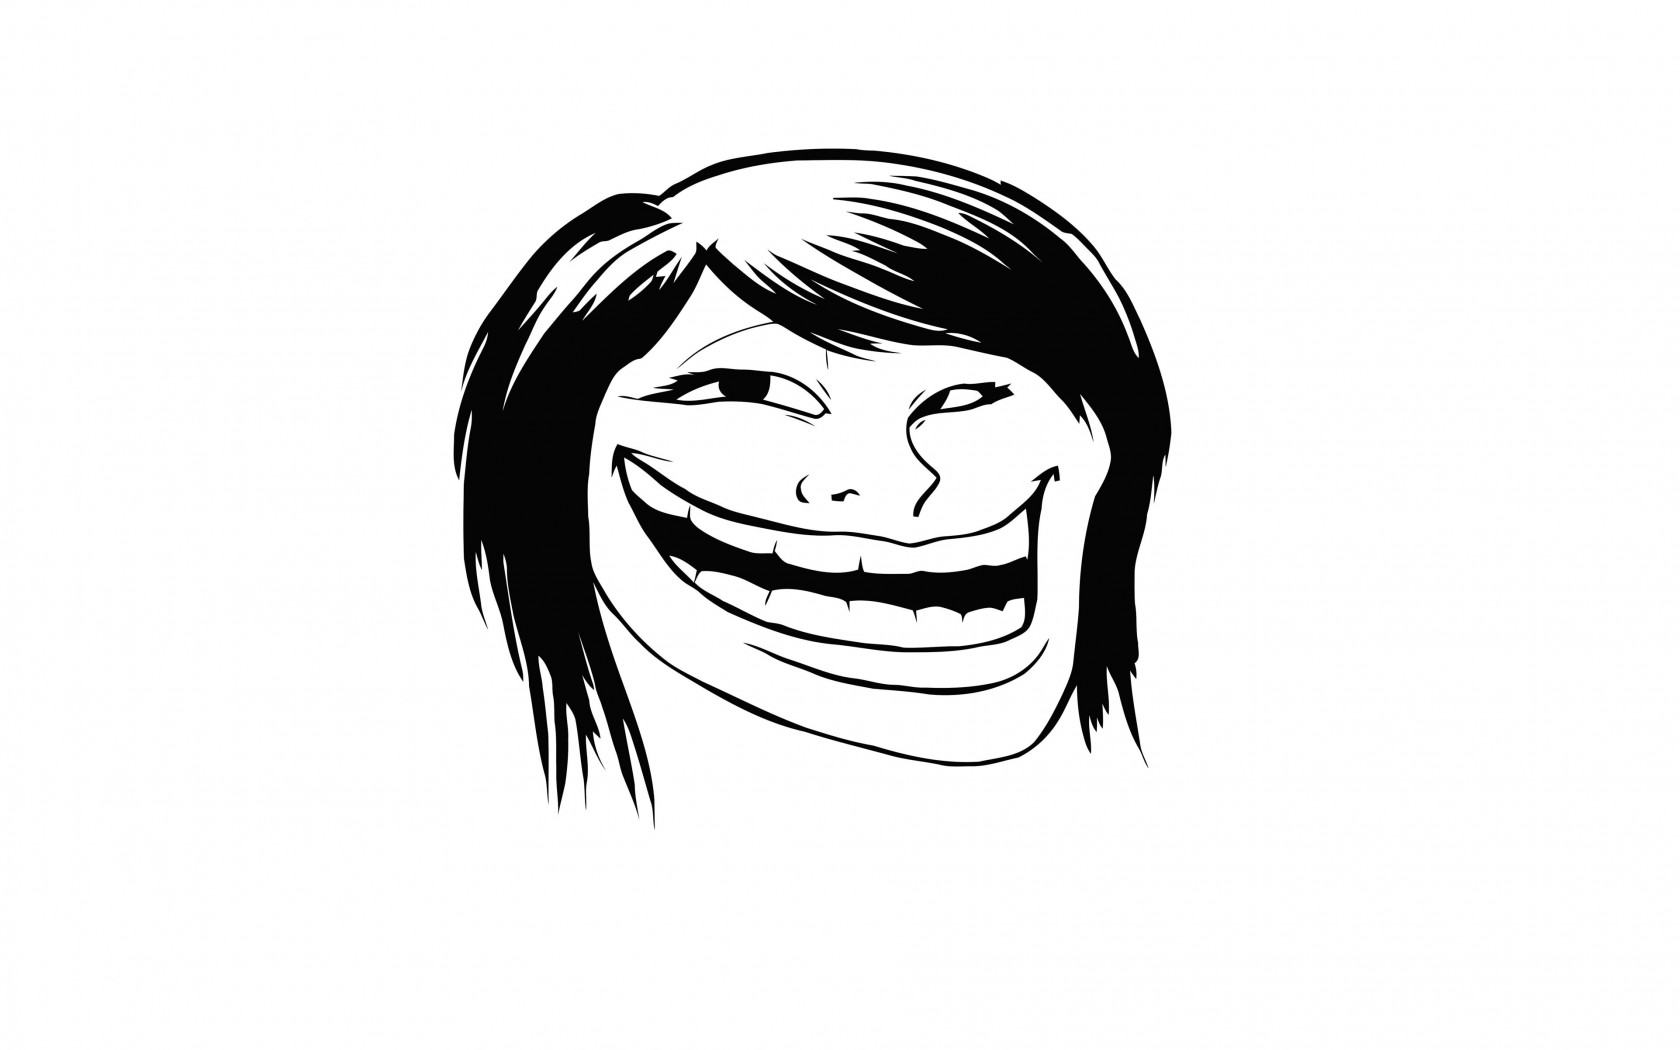 Female Troll Face Meme Wallpaper for Desktop 1680x1050